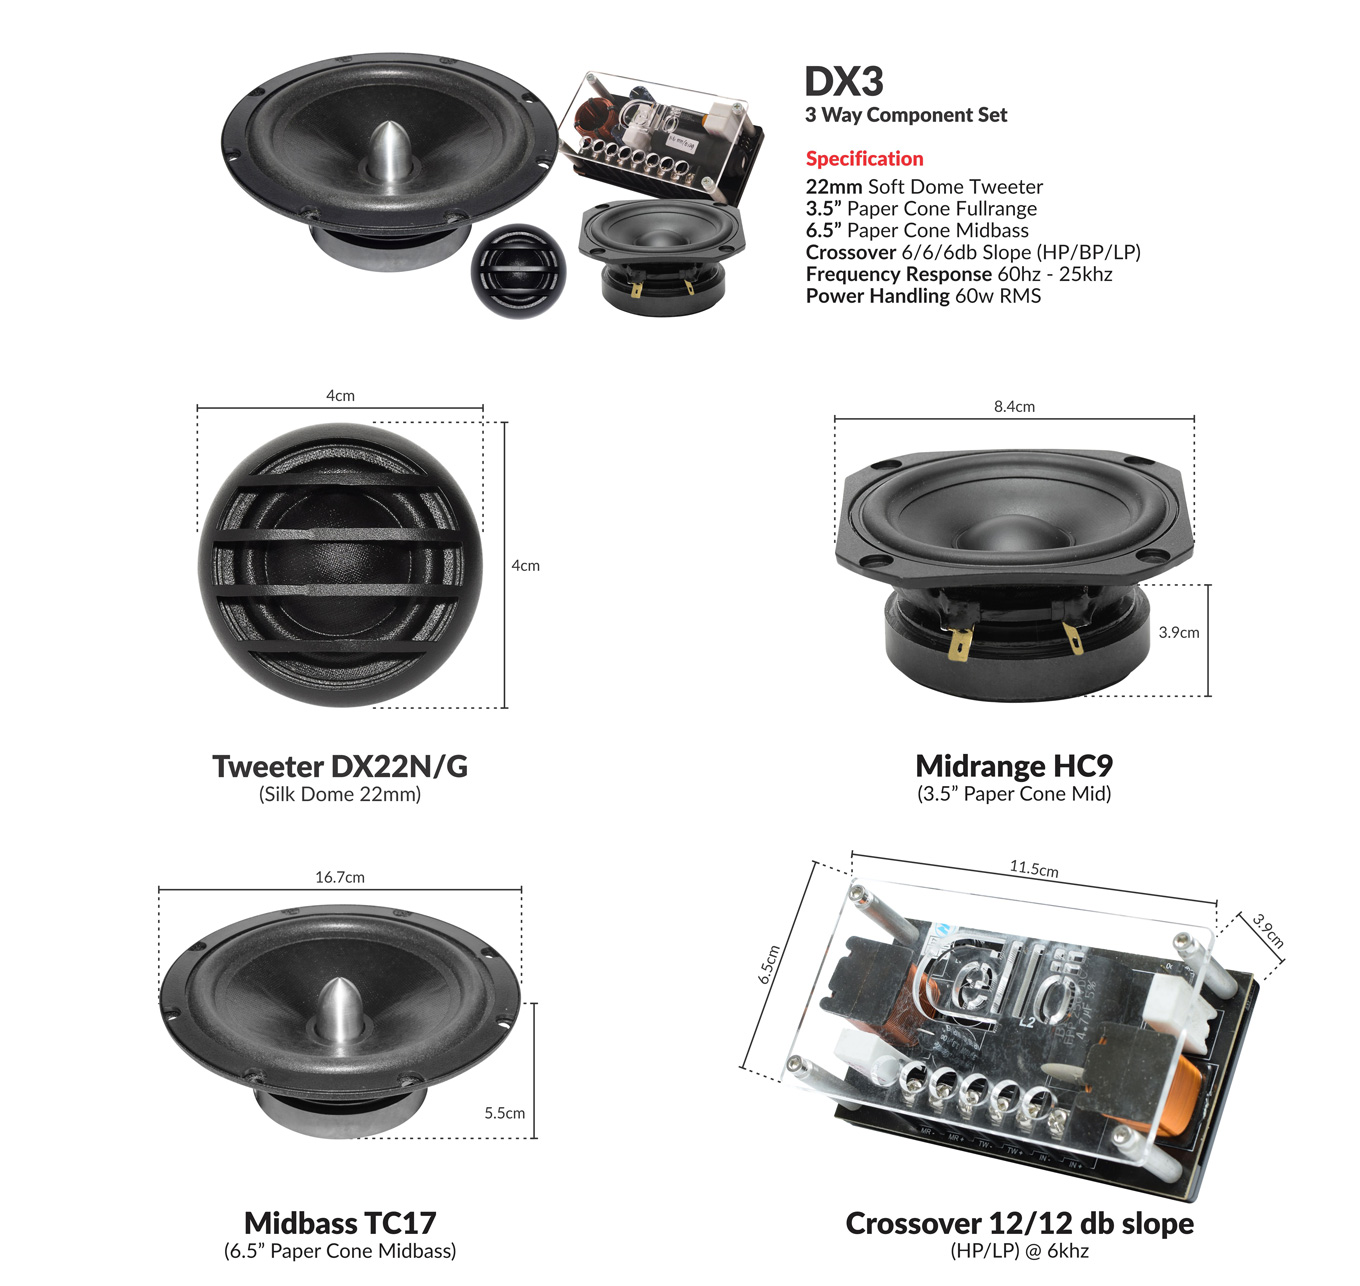 aa-dx3-specification-new